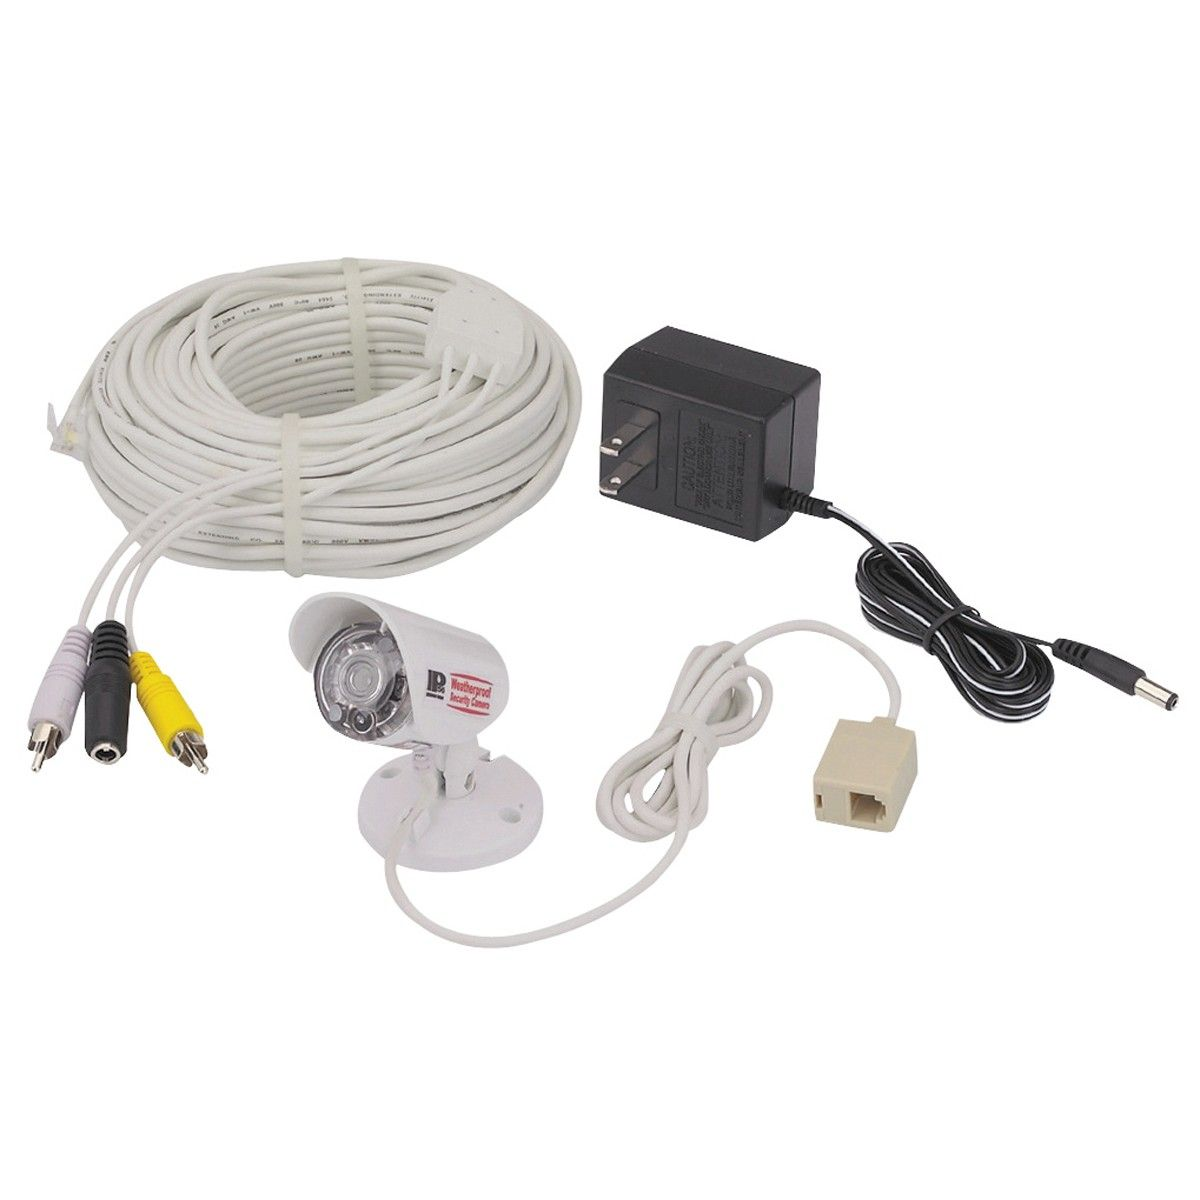 harbor freight security camera wiring diagram are you harbor freight security camera 47546 wiring diagram are you concerned about security of your home